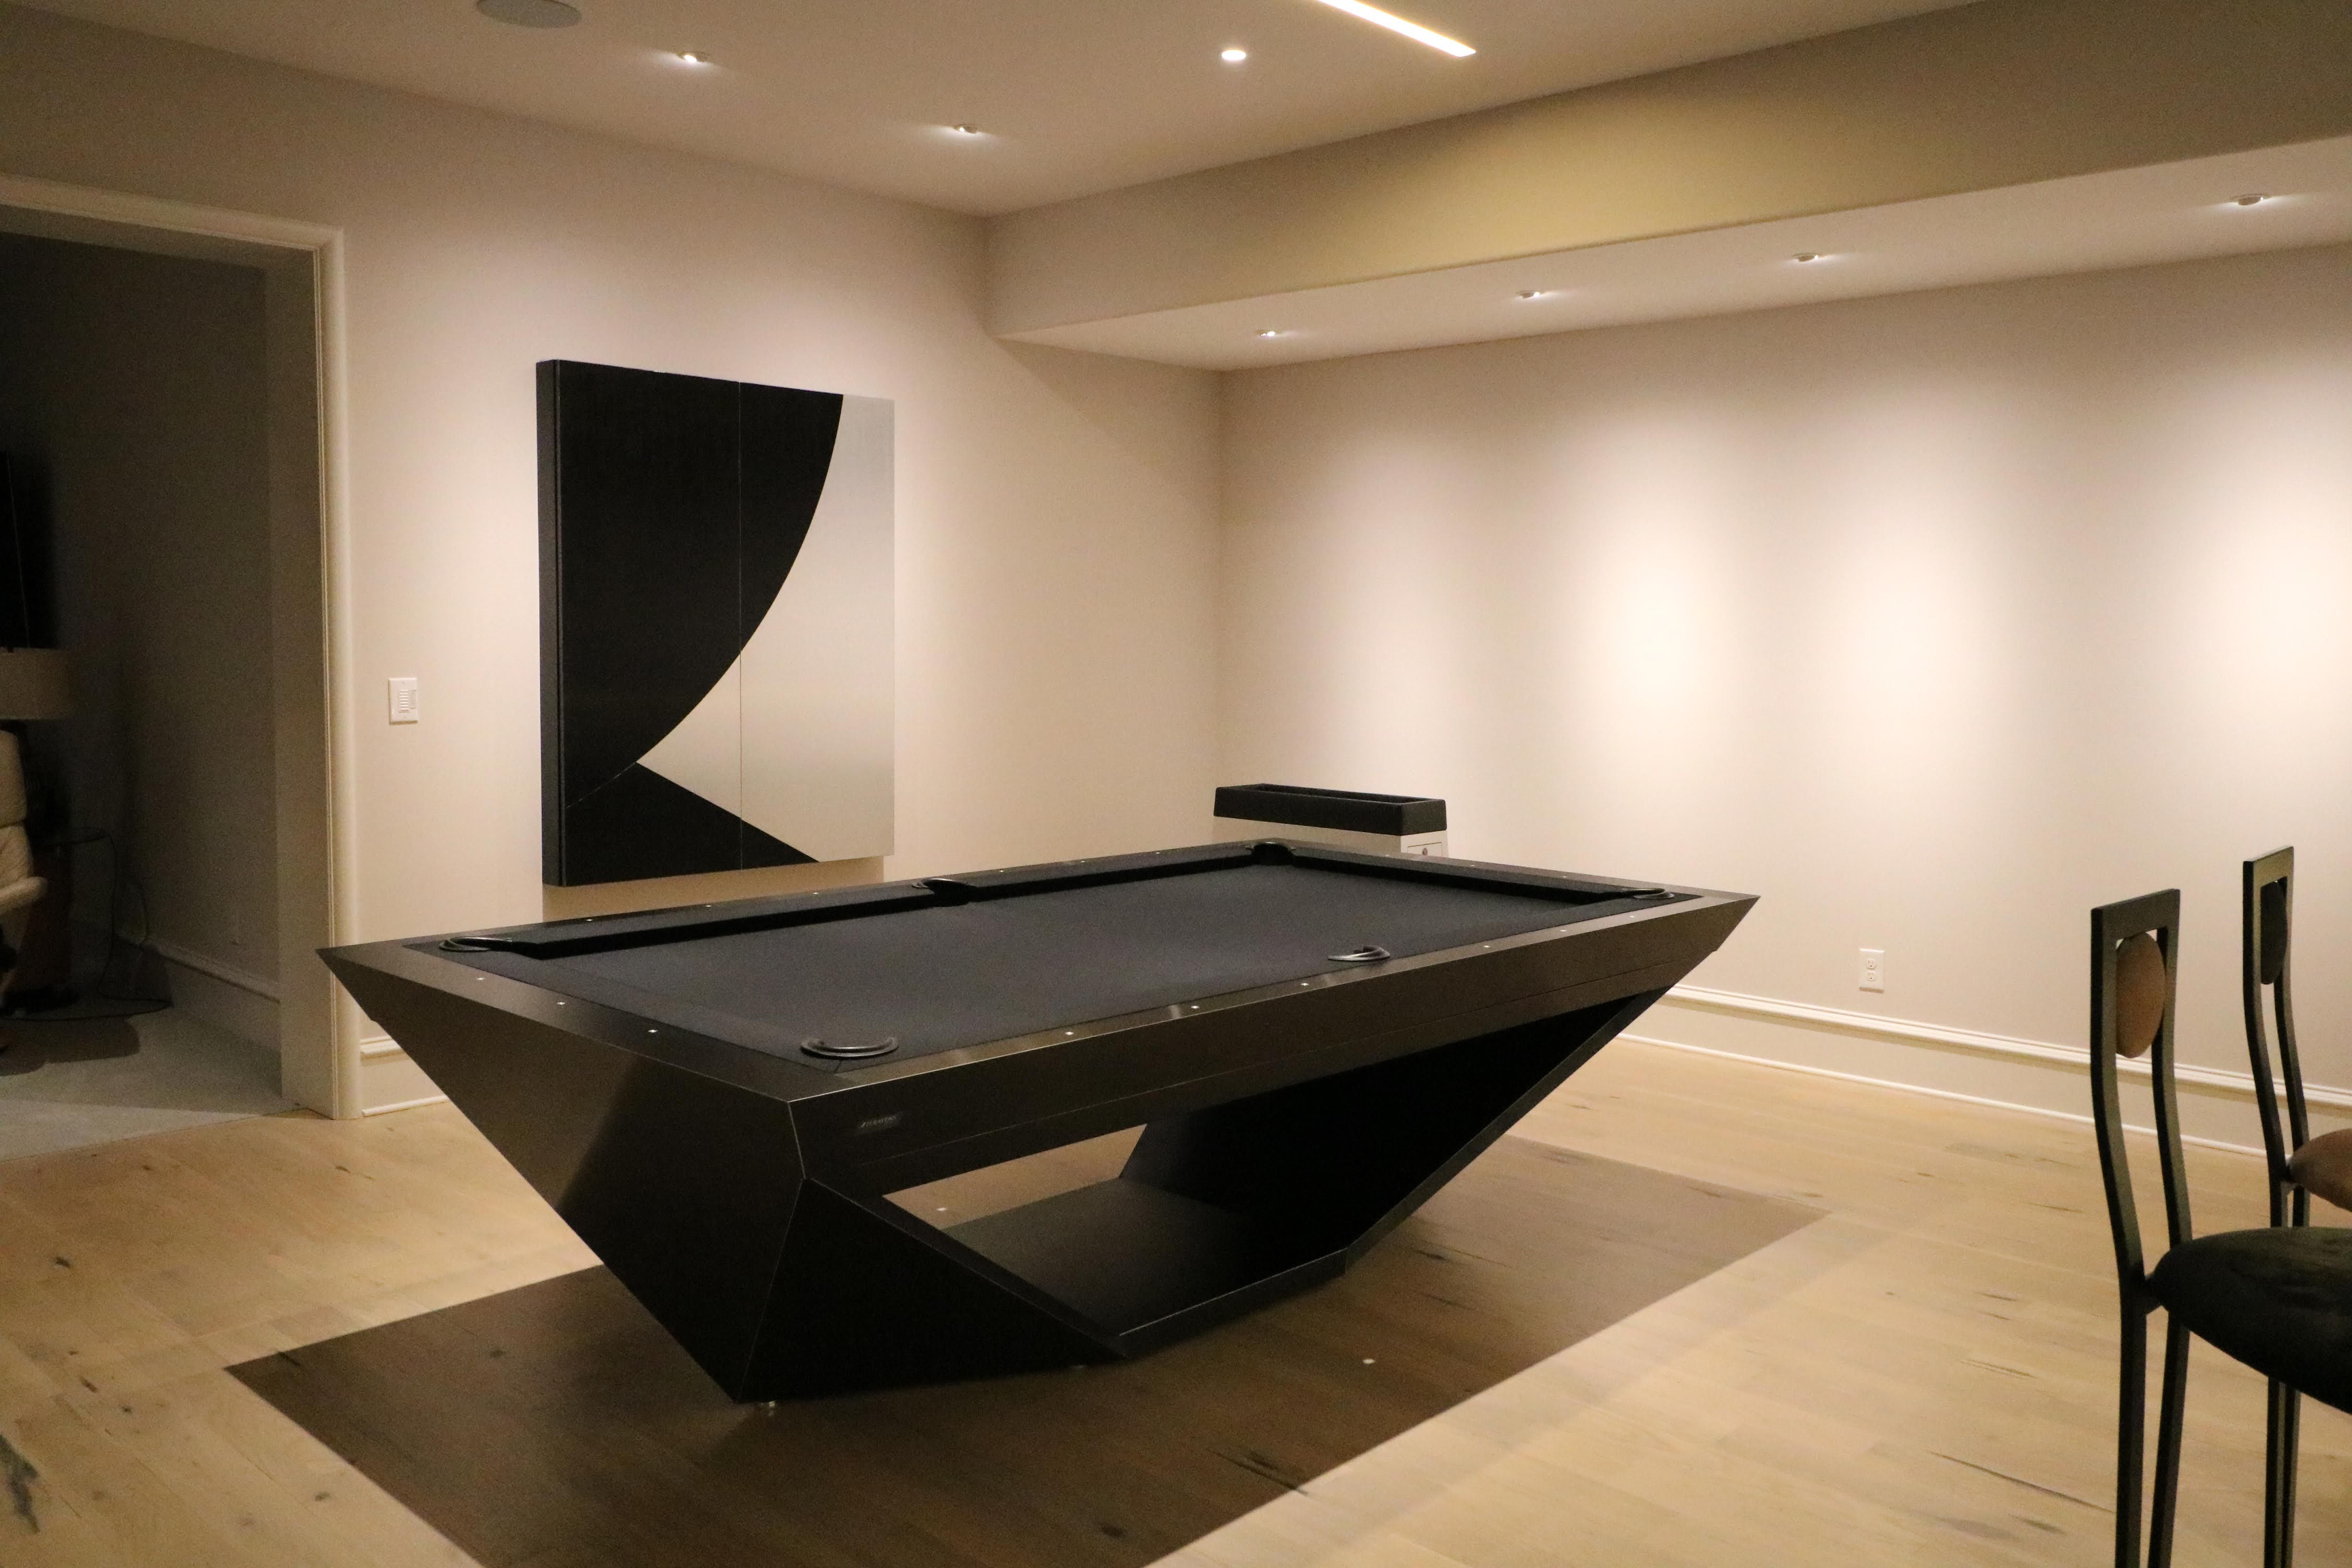 Drawing Influence From The Stealth Bomber Aircraft 11 Ravens Brings A Model That Is Precision Engineer Home Bar Designs Modern Pool Table Basement Bar Designs